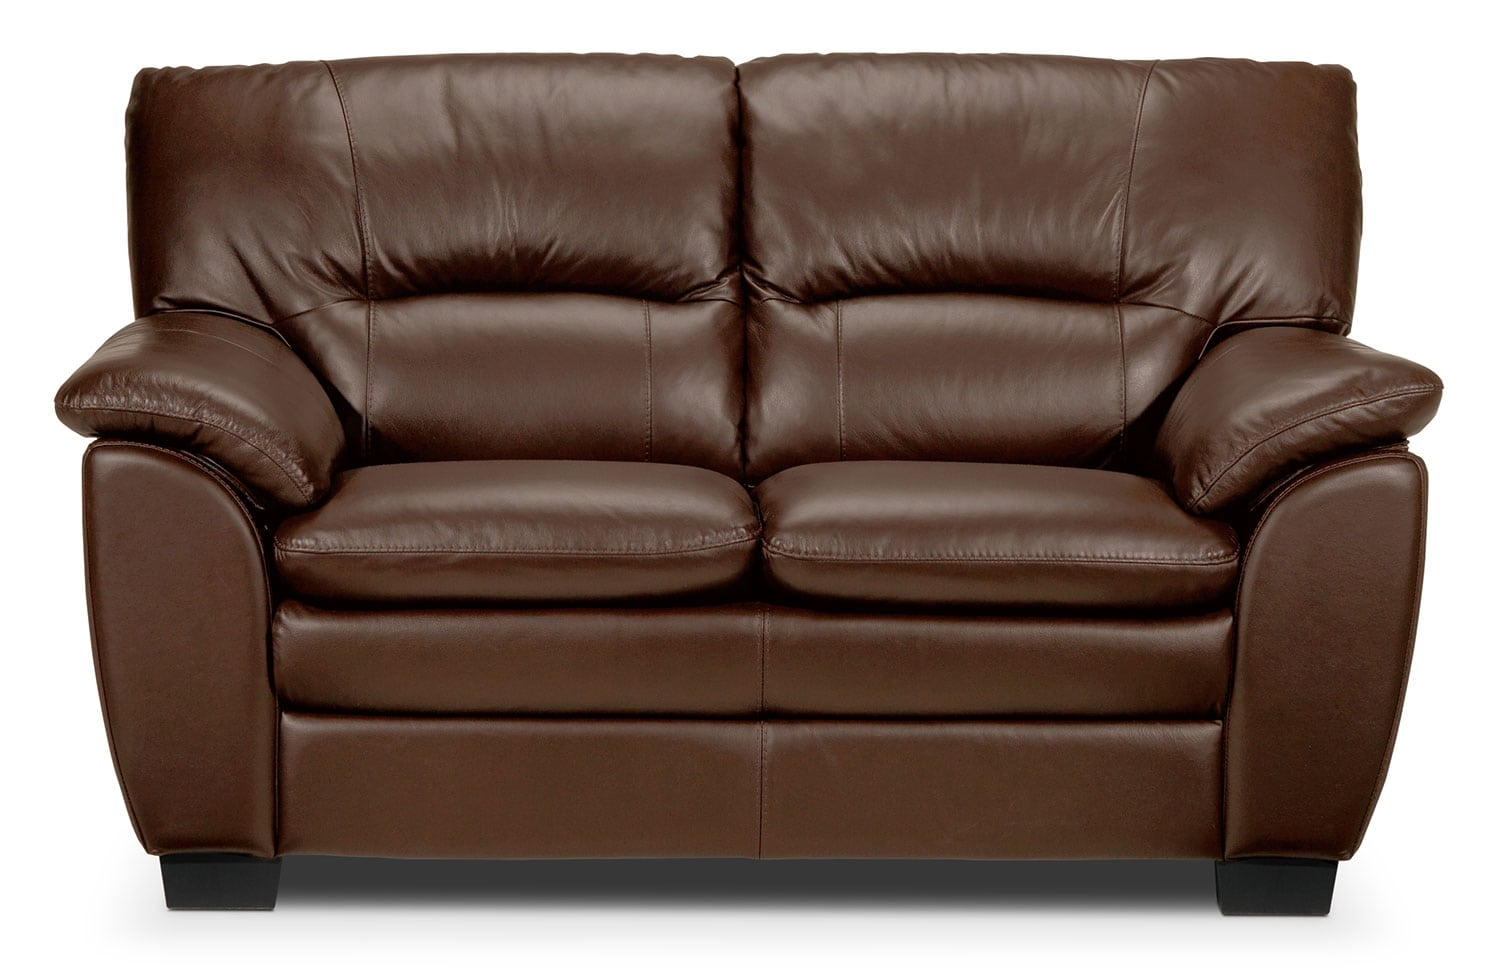 Rodero Loveseat - Hazelnut